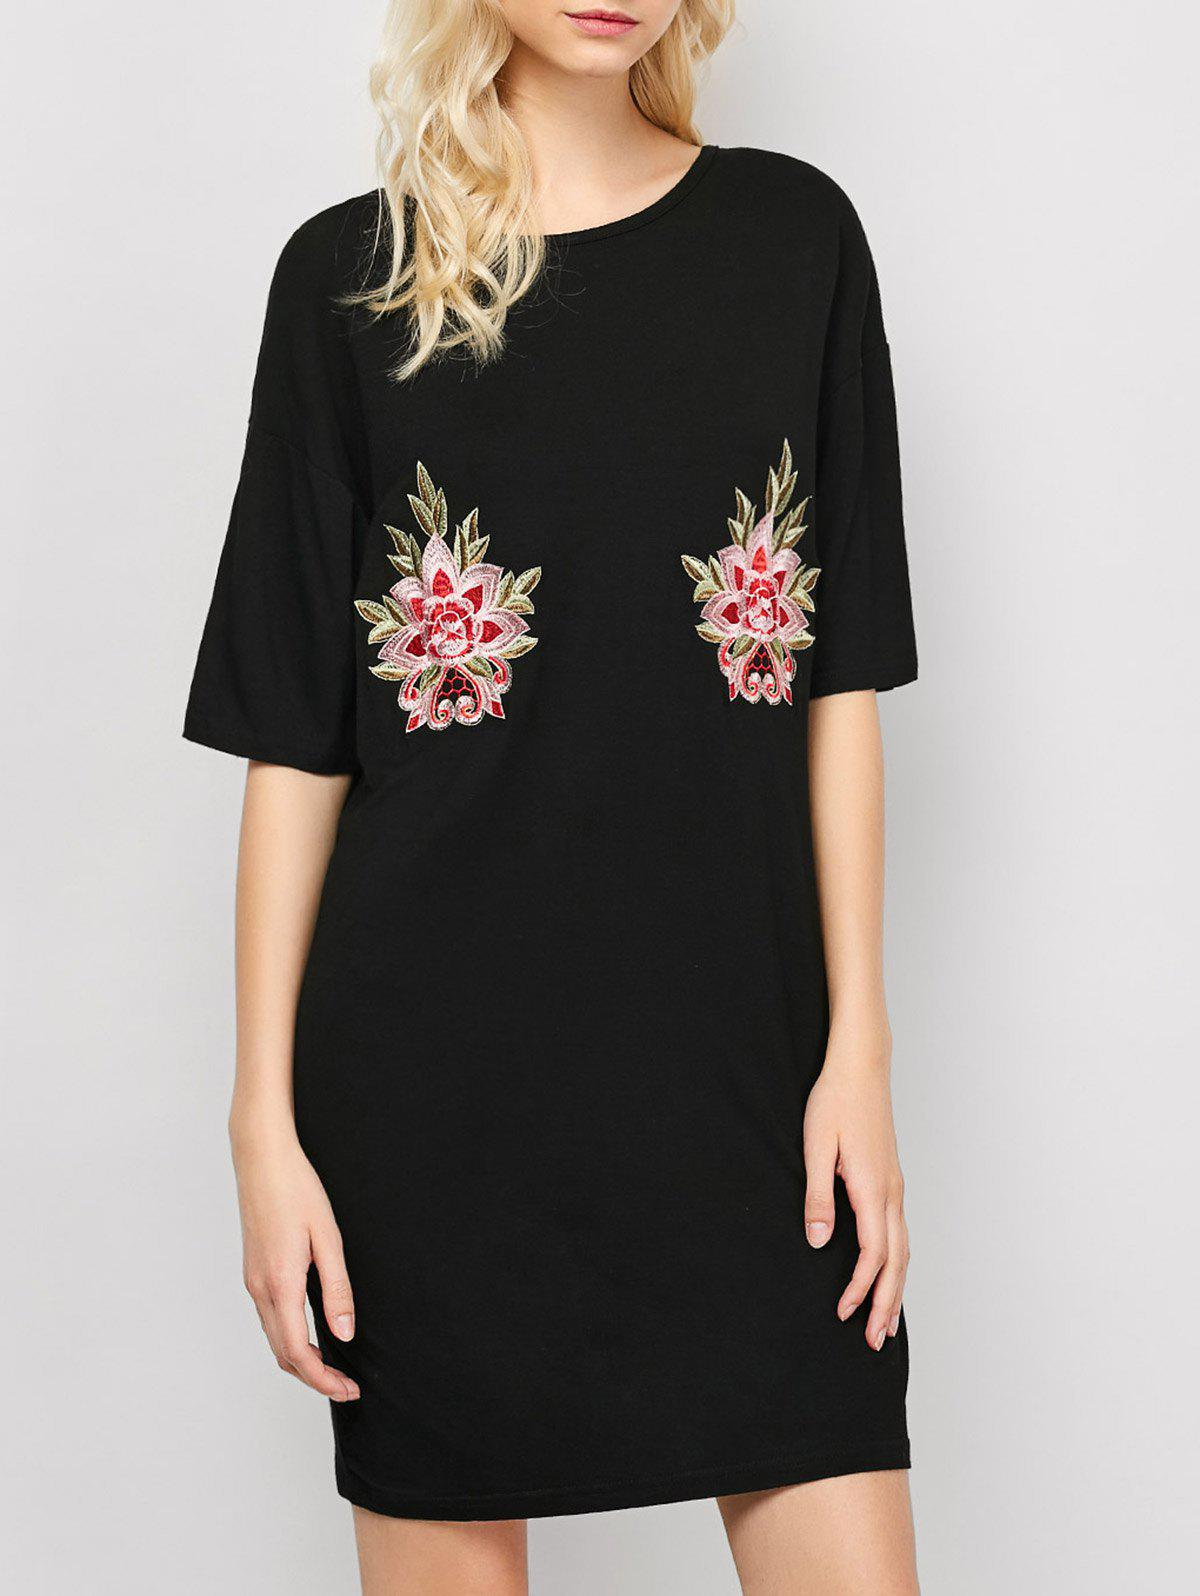 Embroidered Casual Summer T-Shirt Dress - BLACK S